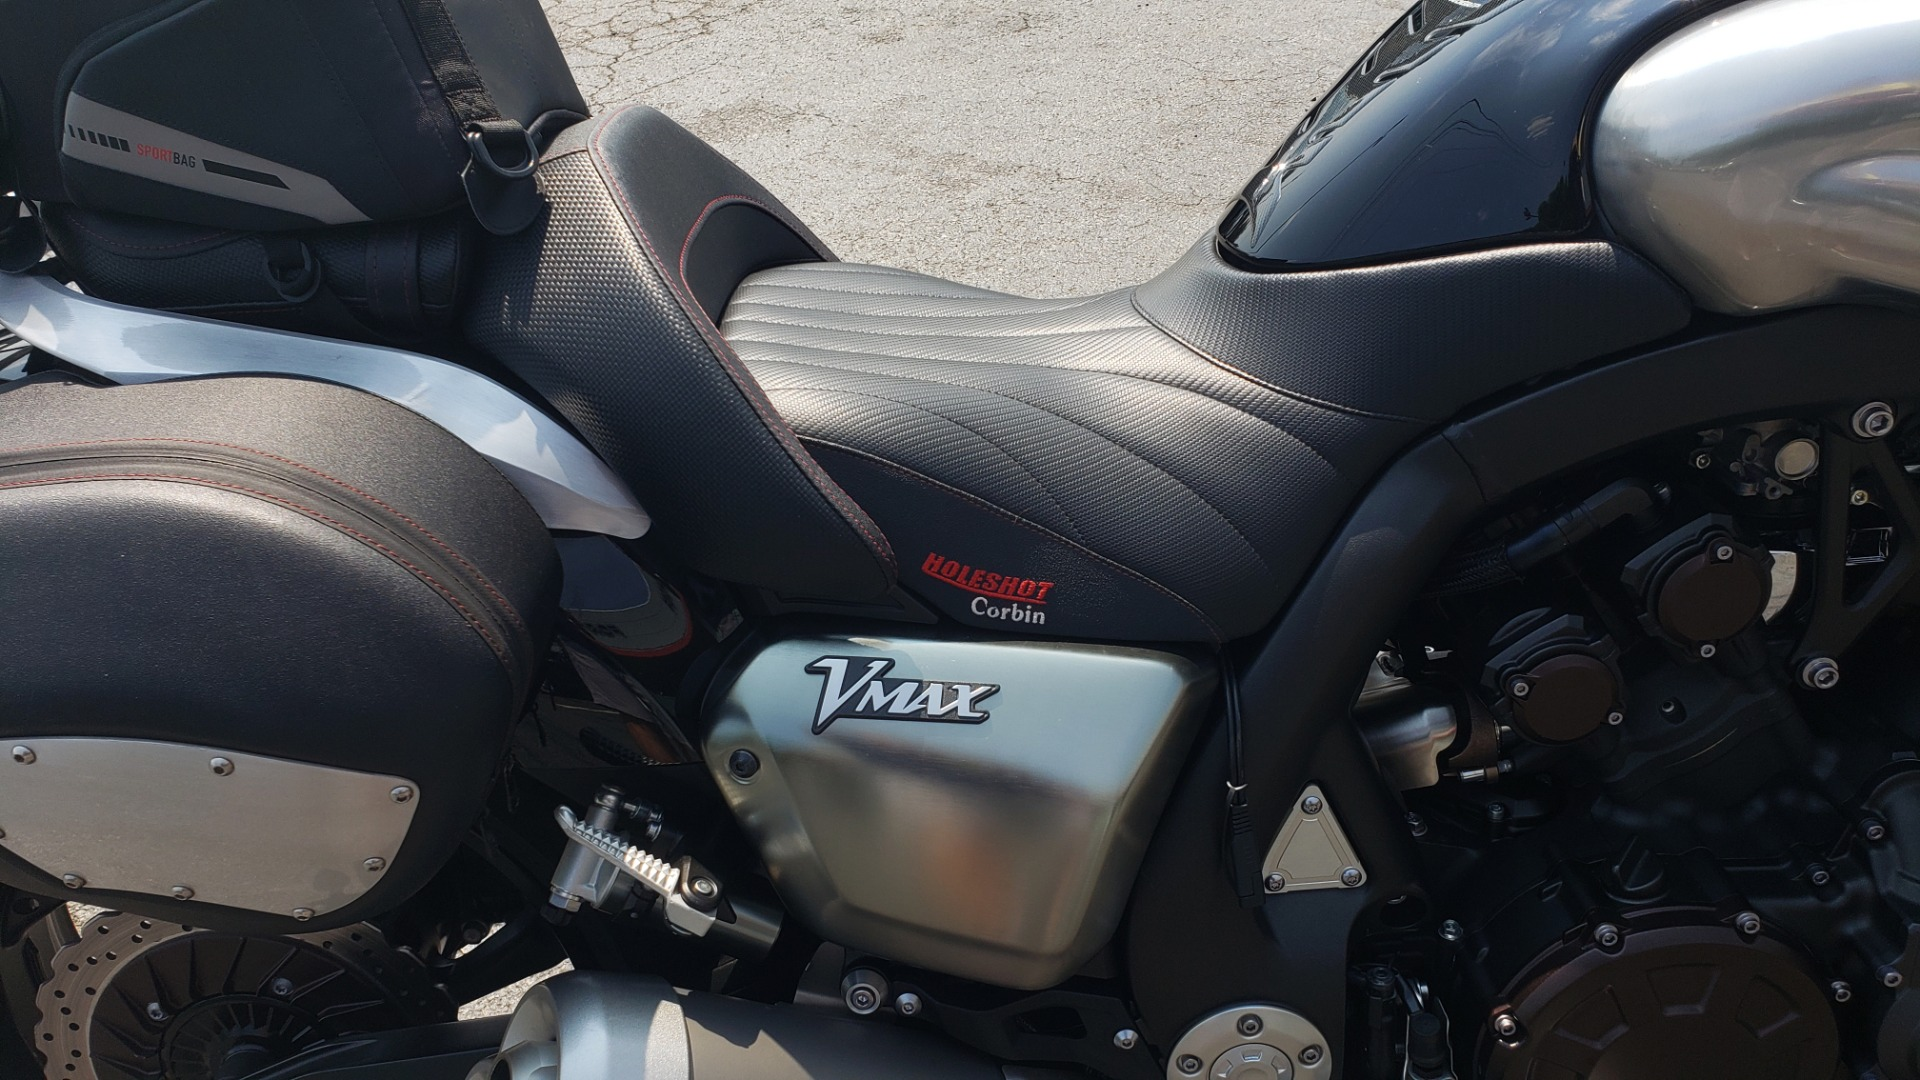 Used 2009 Yamaha V-MAX MOTORCYCLE / SPORT CRUISER / 18K MILES / SUPER CLEAN! for sale $9,500 at Formula Imports in Charlotte NC 28227 9